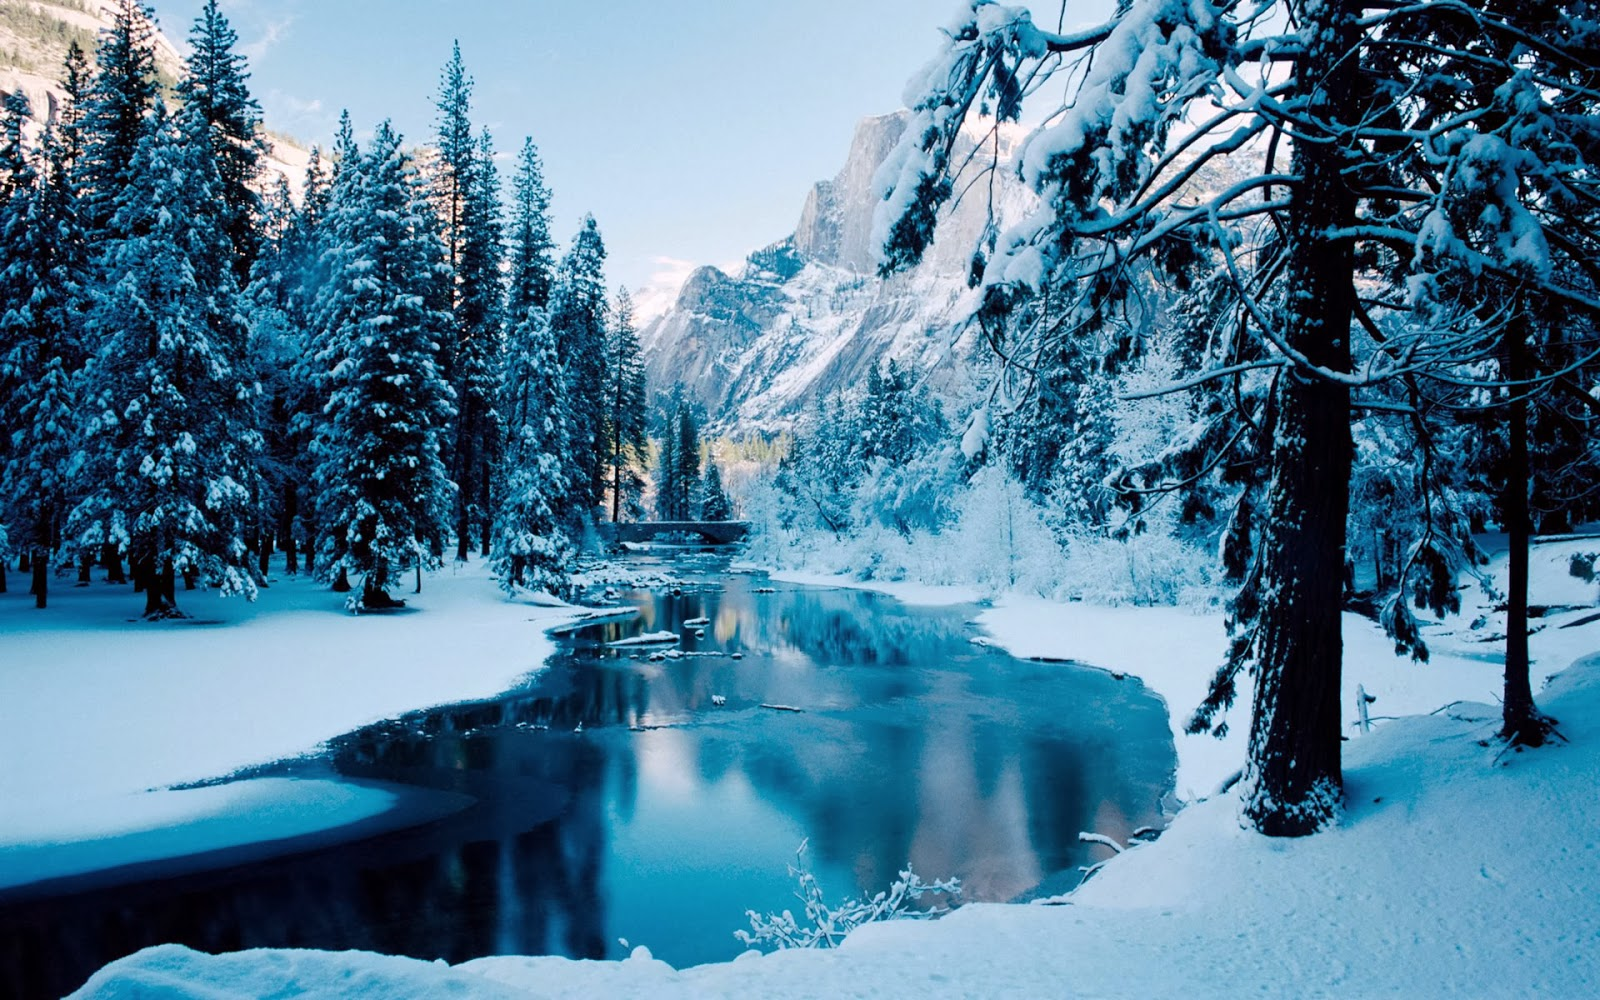 Desktop Backgrounds 4U Winter Scenes 1600x1000